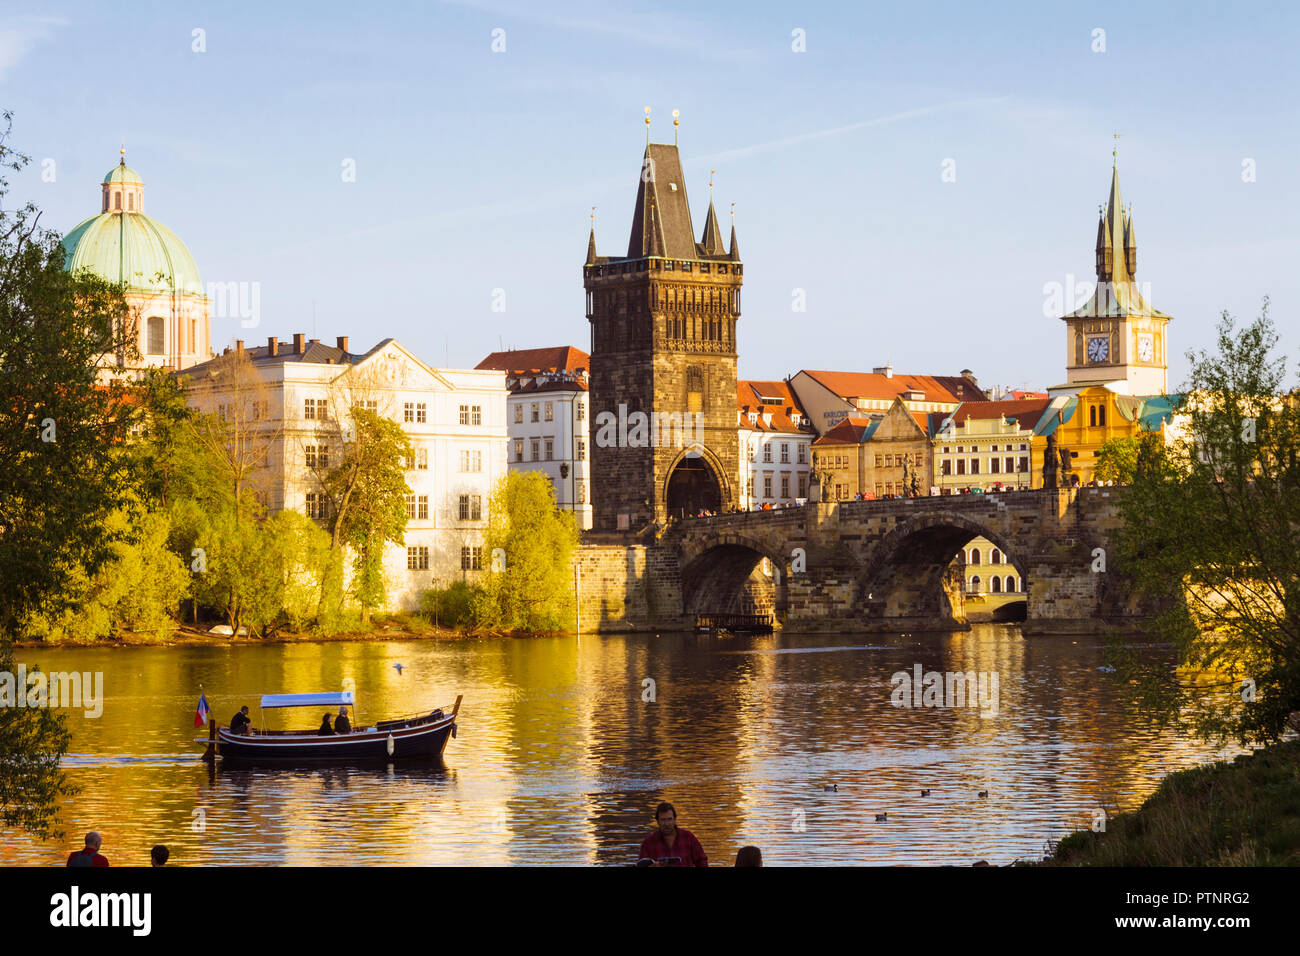 Prague, Czech Republic : A sightseeing boat full of tourists sails towards Charles Bridge at sunset. - Stock Image